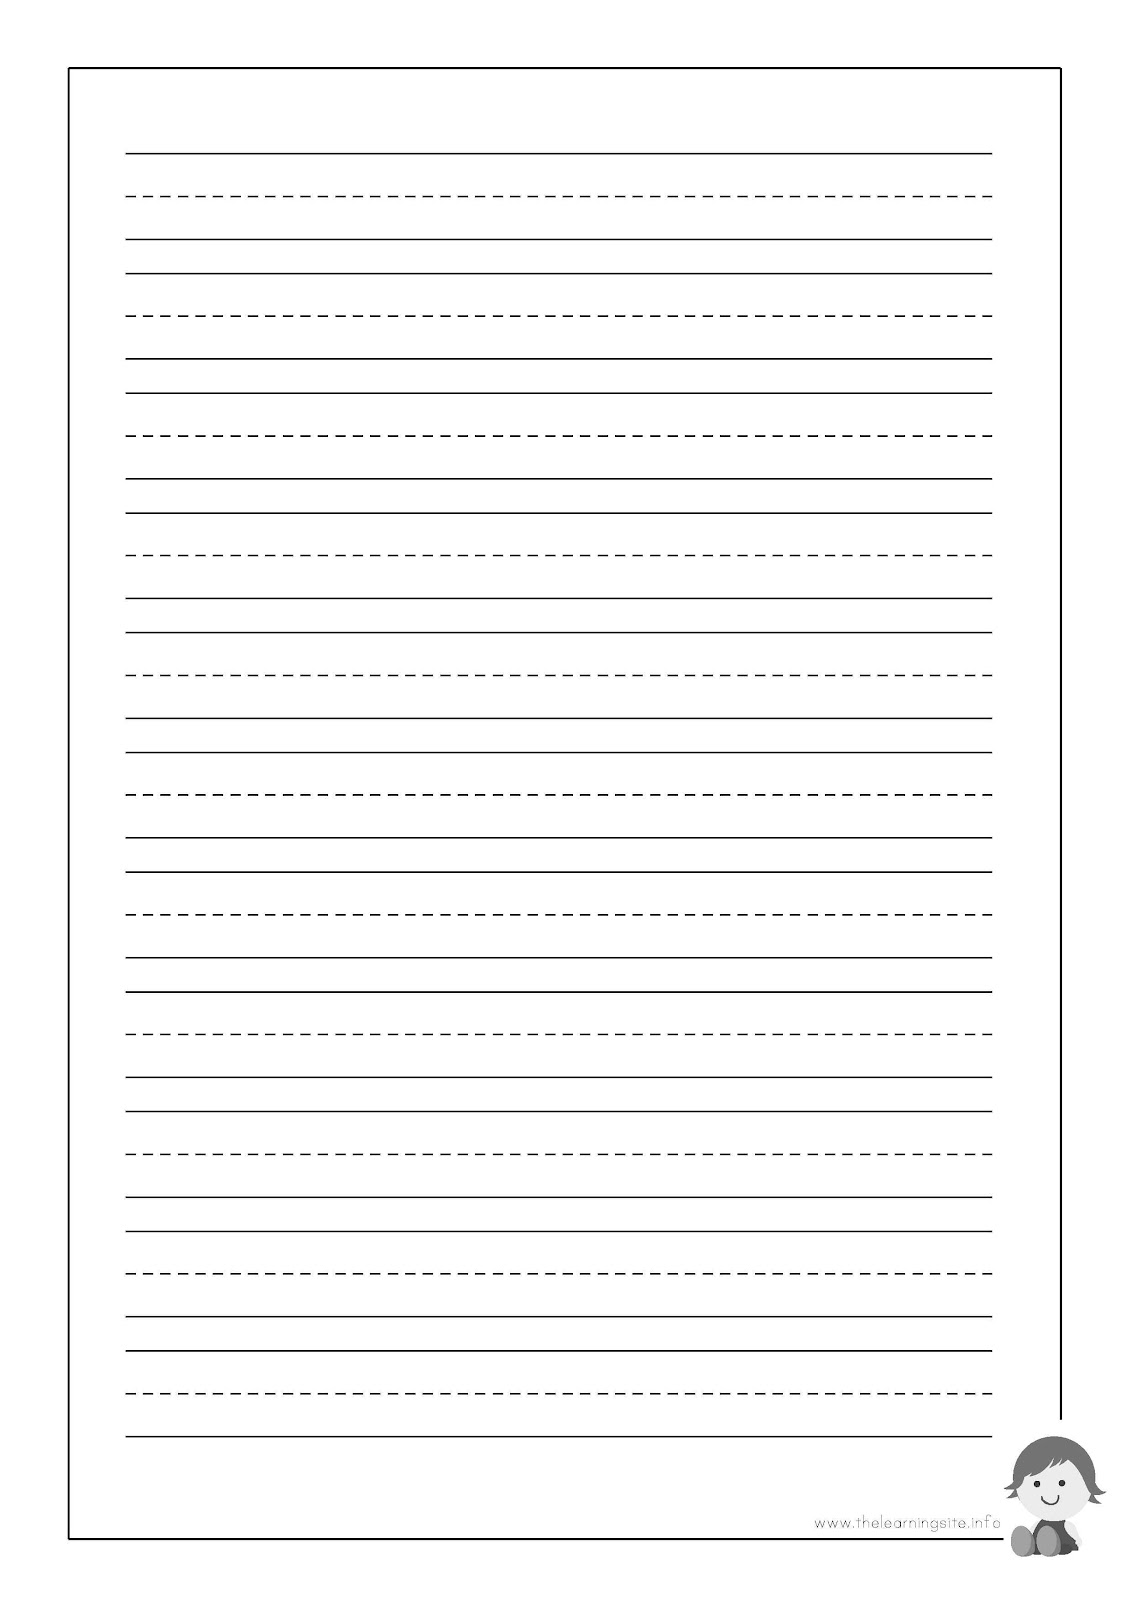 ... For Adults | Free Printable Math Worksheets - Mibb-design.com